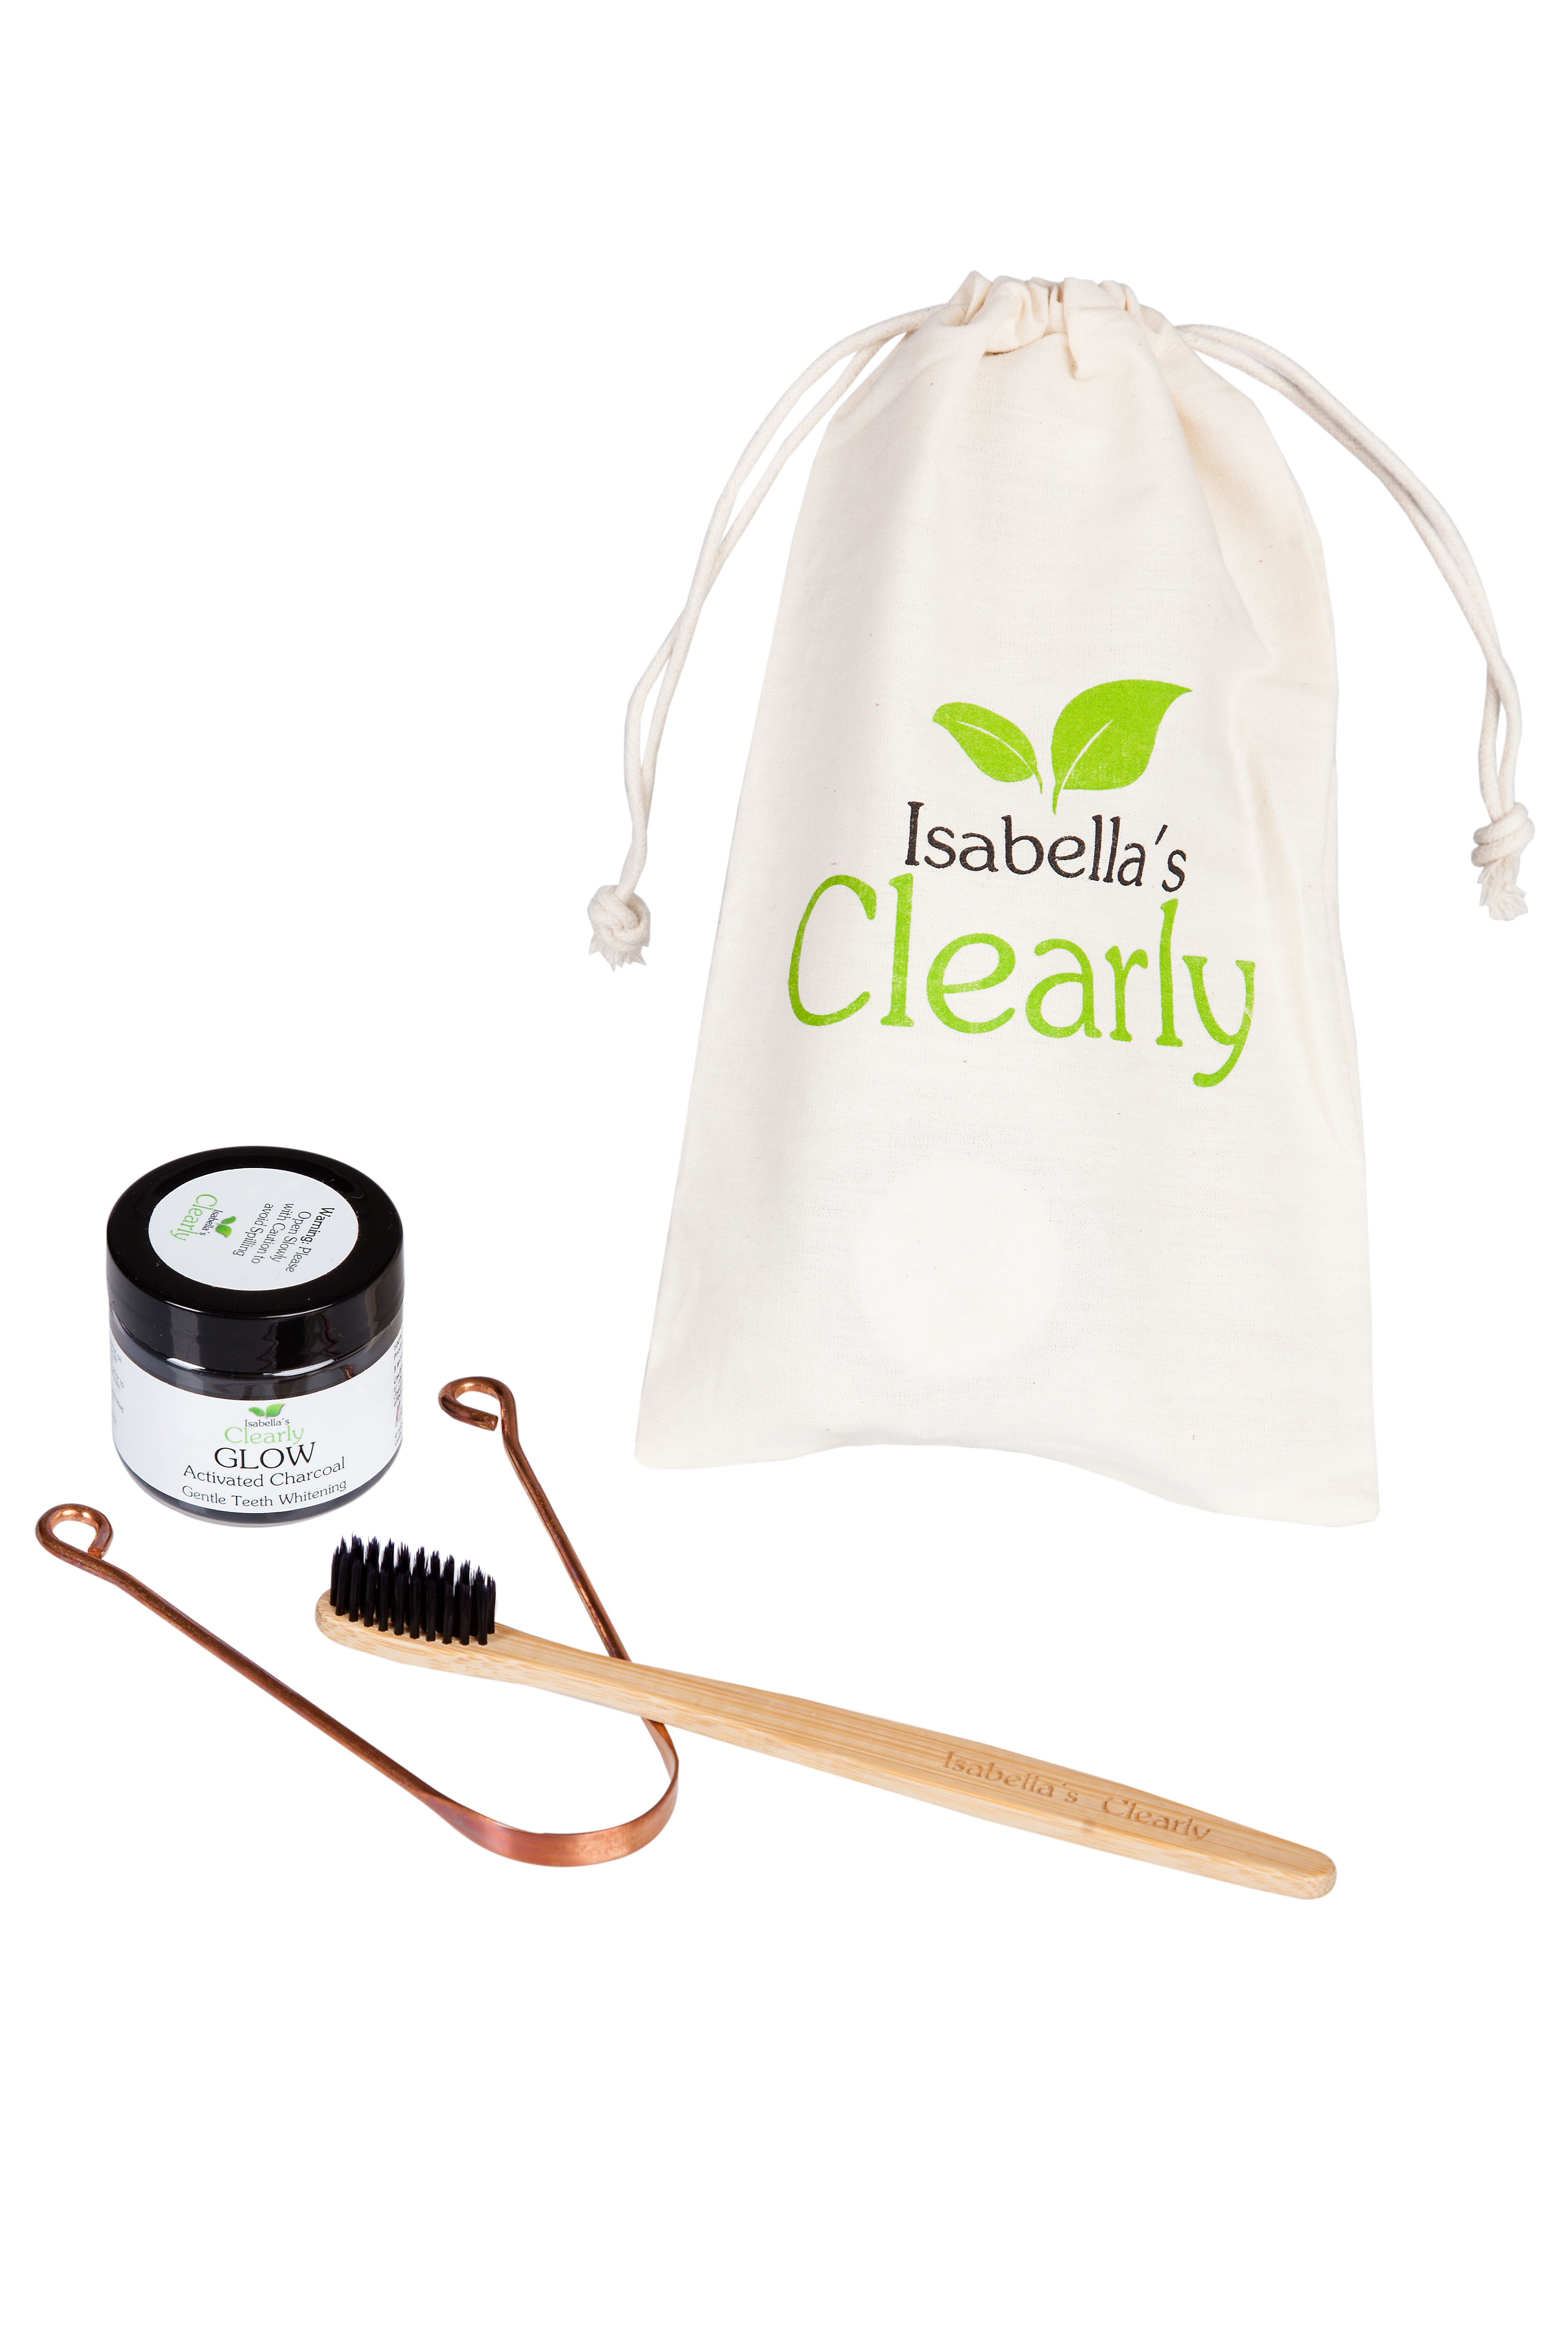 Clearly GLOW Teeth Whitening Charcoal + Toothbrush + Tongue Scraper